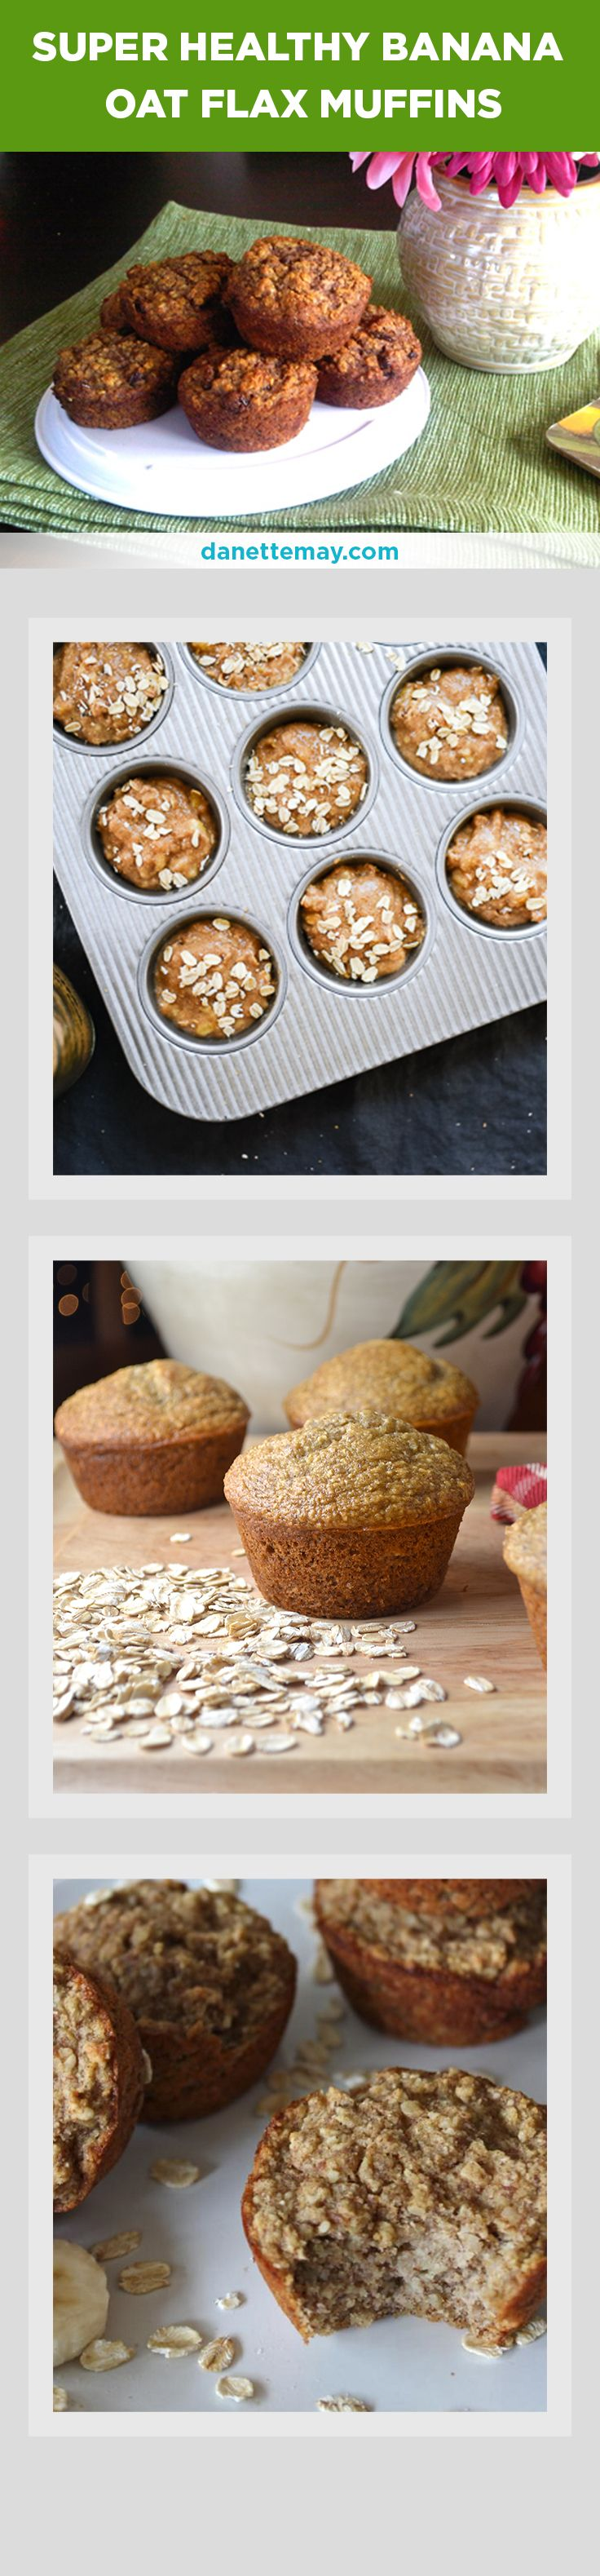 This banana oat flax muffin recipe is so yummy and super healthy. It's gluten free and easy to make.  If you want more great tasting healthy recipes can order my recipe book with over 150 fat burning recipes here --> http://www.eatdrinkshrinkplan.com/bikini-body-recipes-offer/index.html